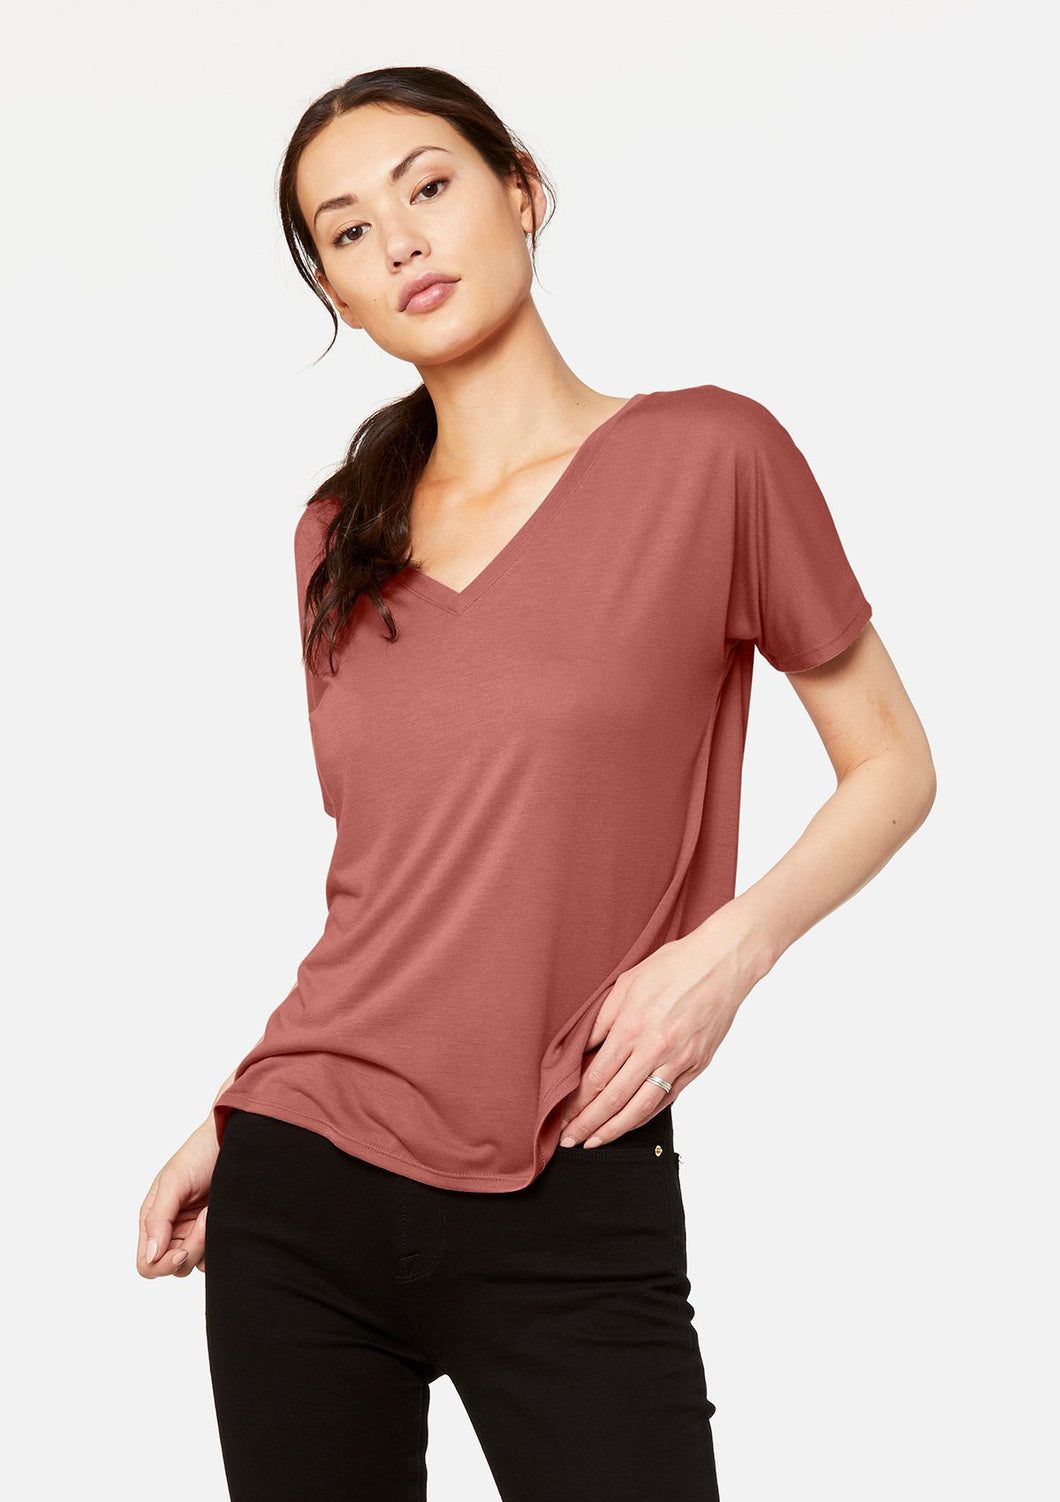 The Slouchy V-Neck Tee